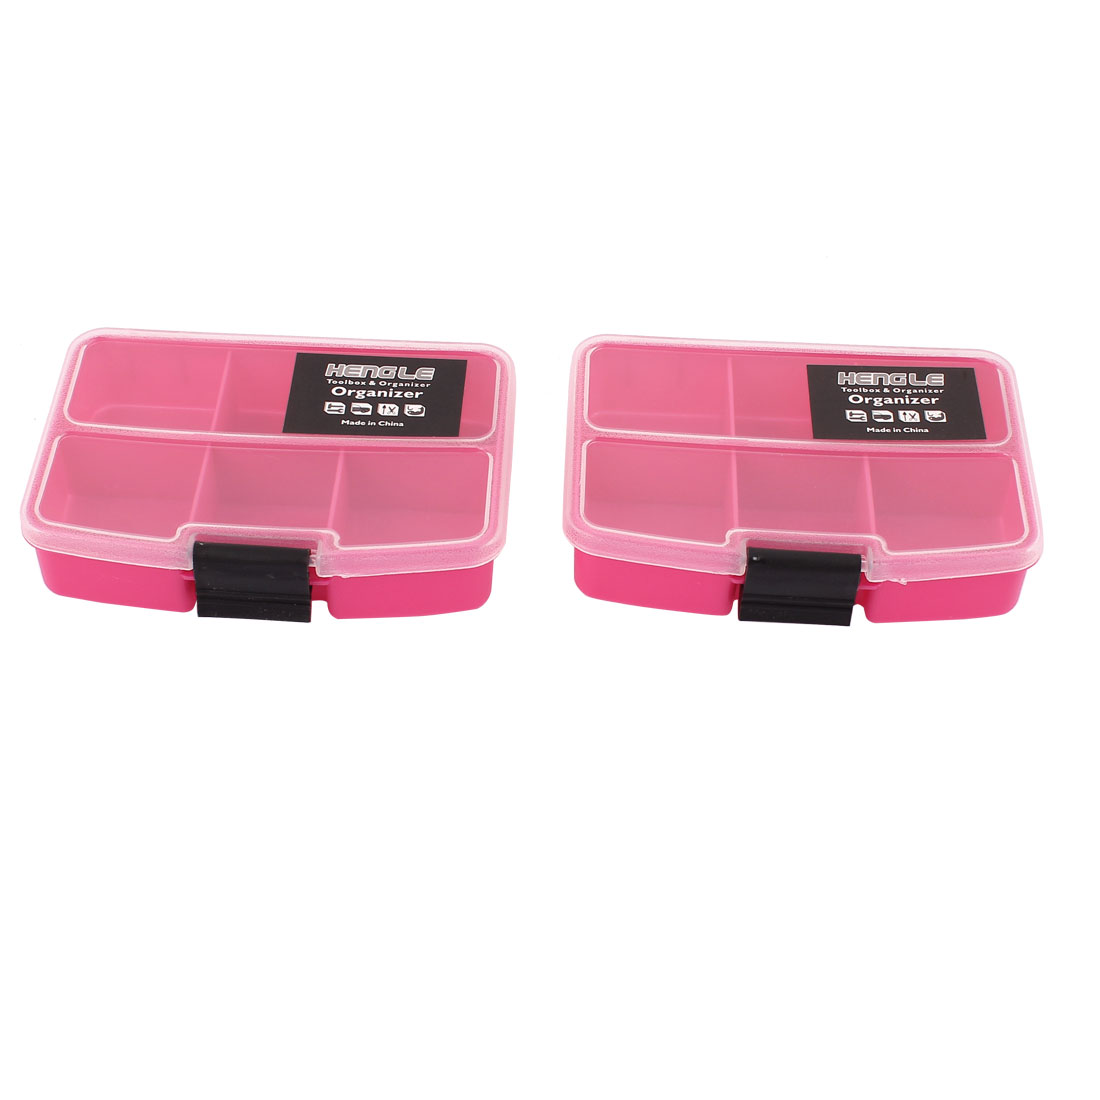 Fishing Tool Jewellery Container Organizer Storage Box Case 6 Slots 2pcs Fuchsia